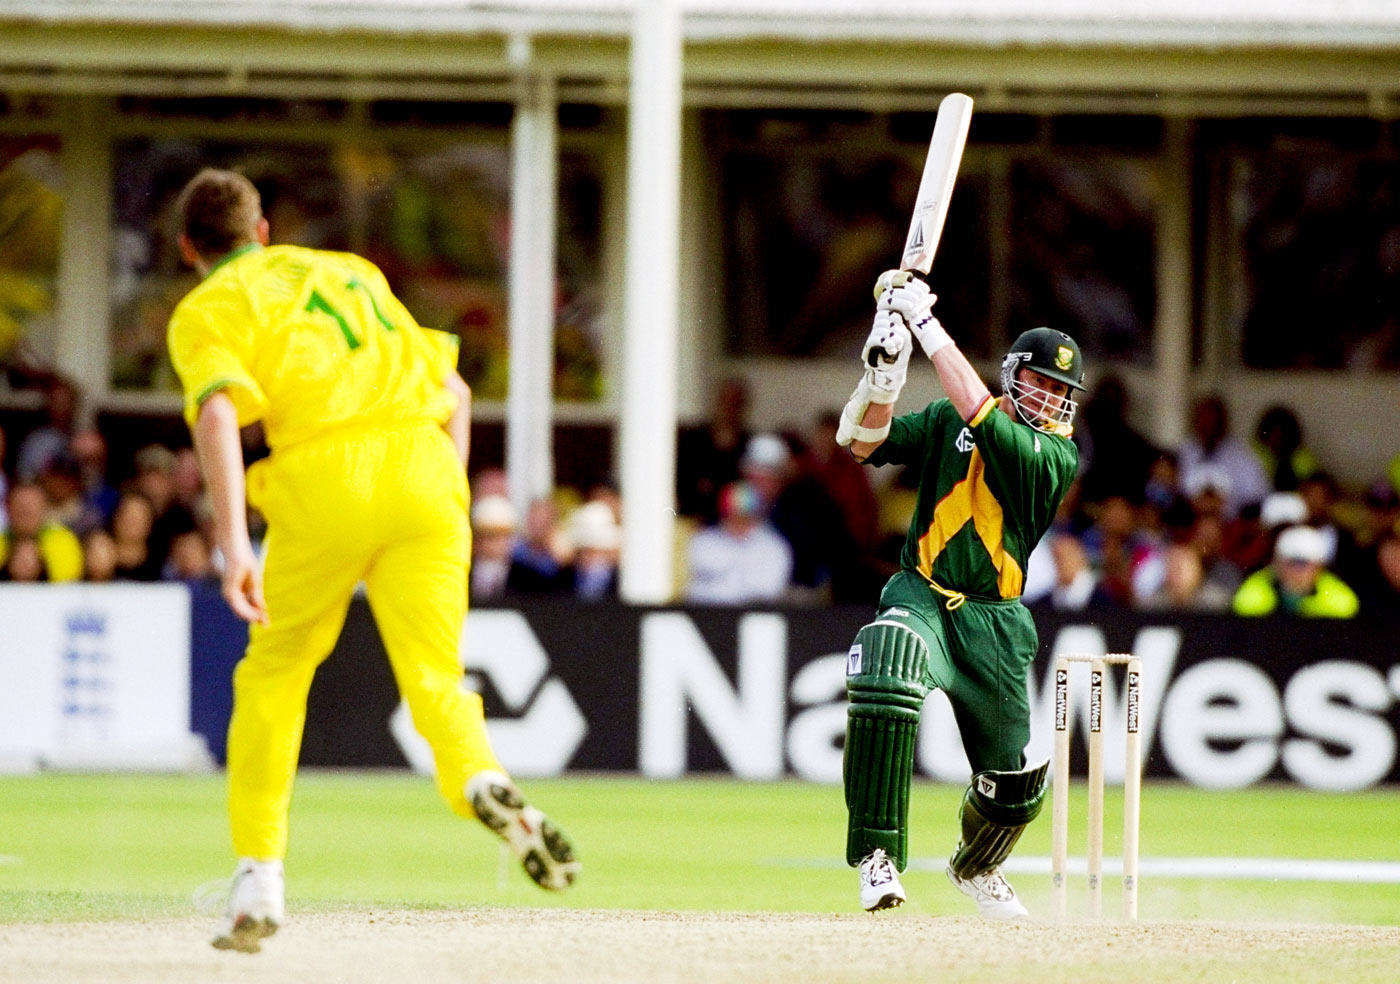 Do or tie: Lance Klusener bludgeoned 31 off 14 balls only to trip up in the end in the unforgettable 1999 semi-final